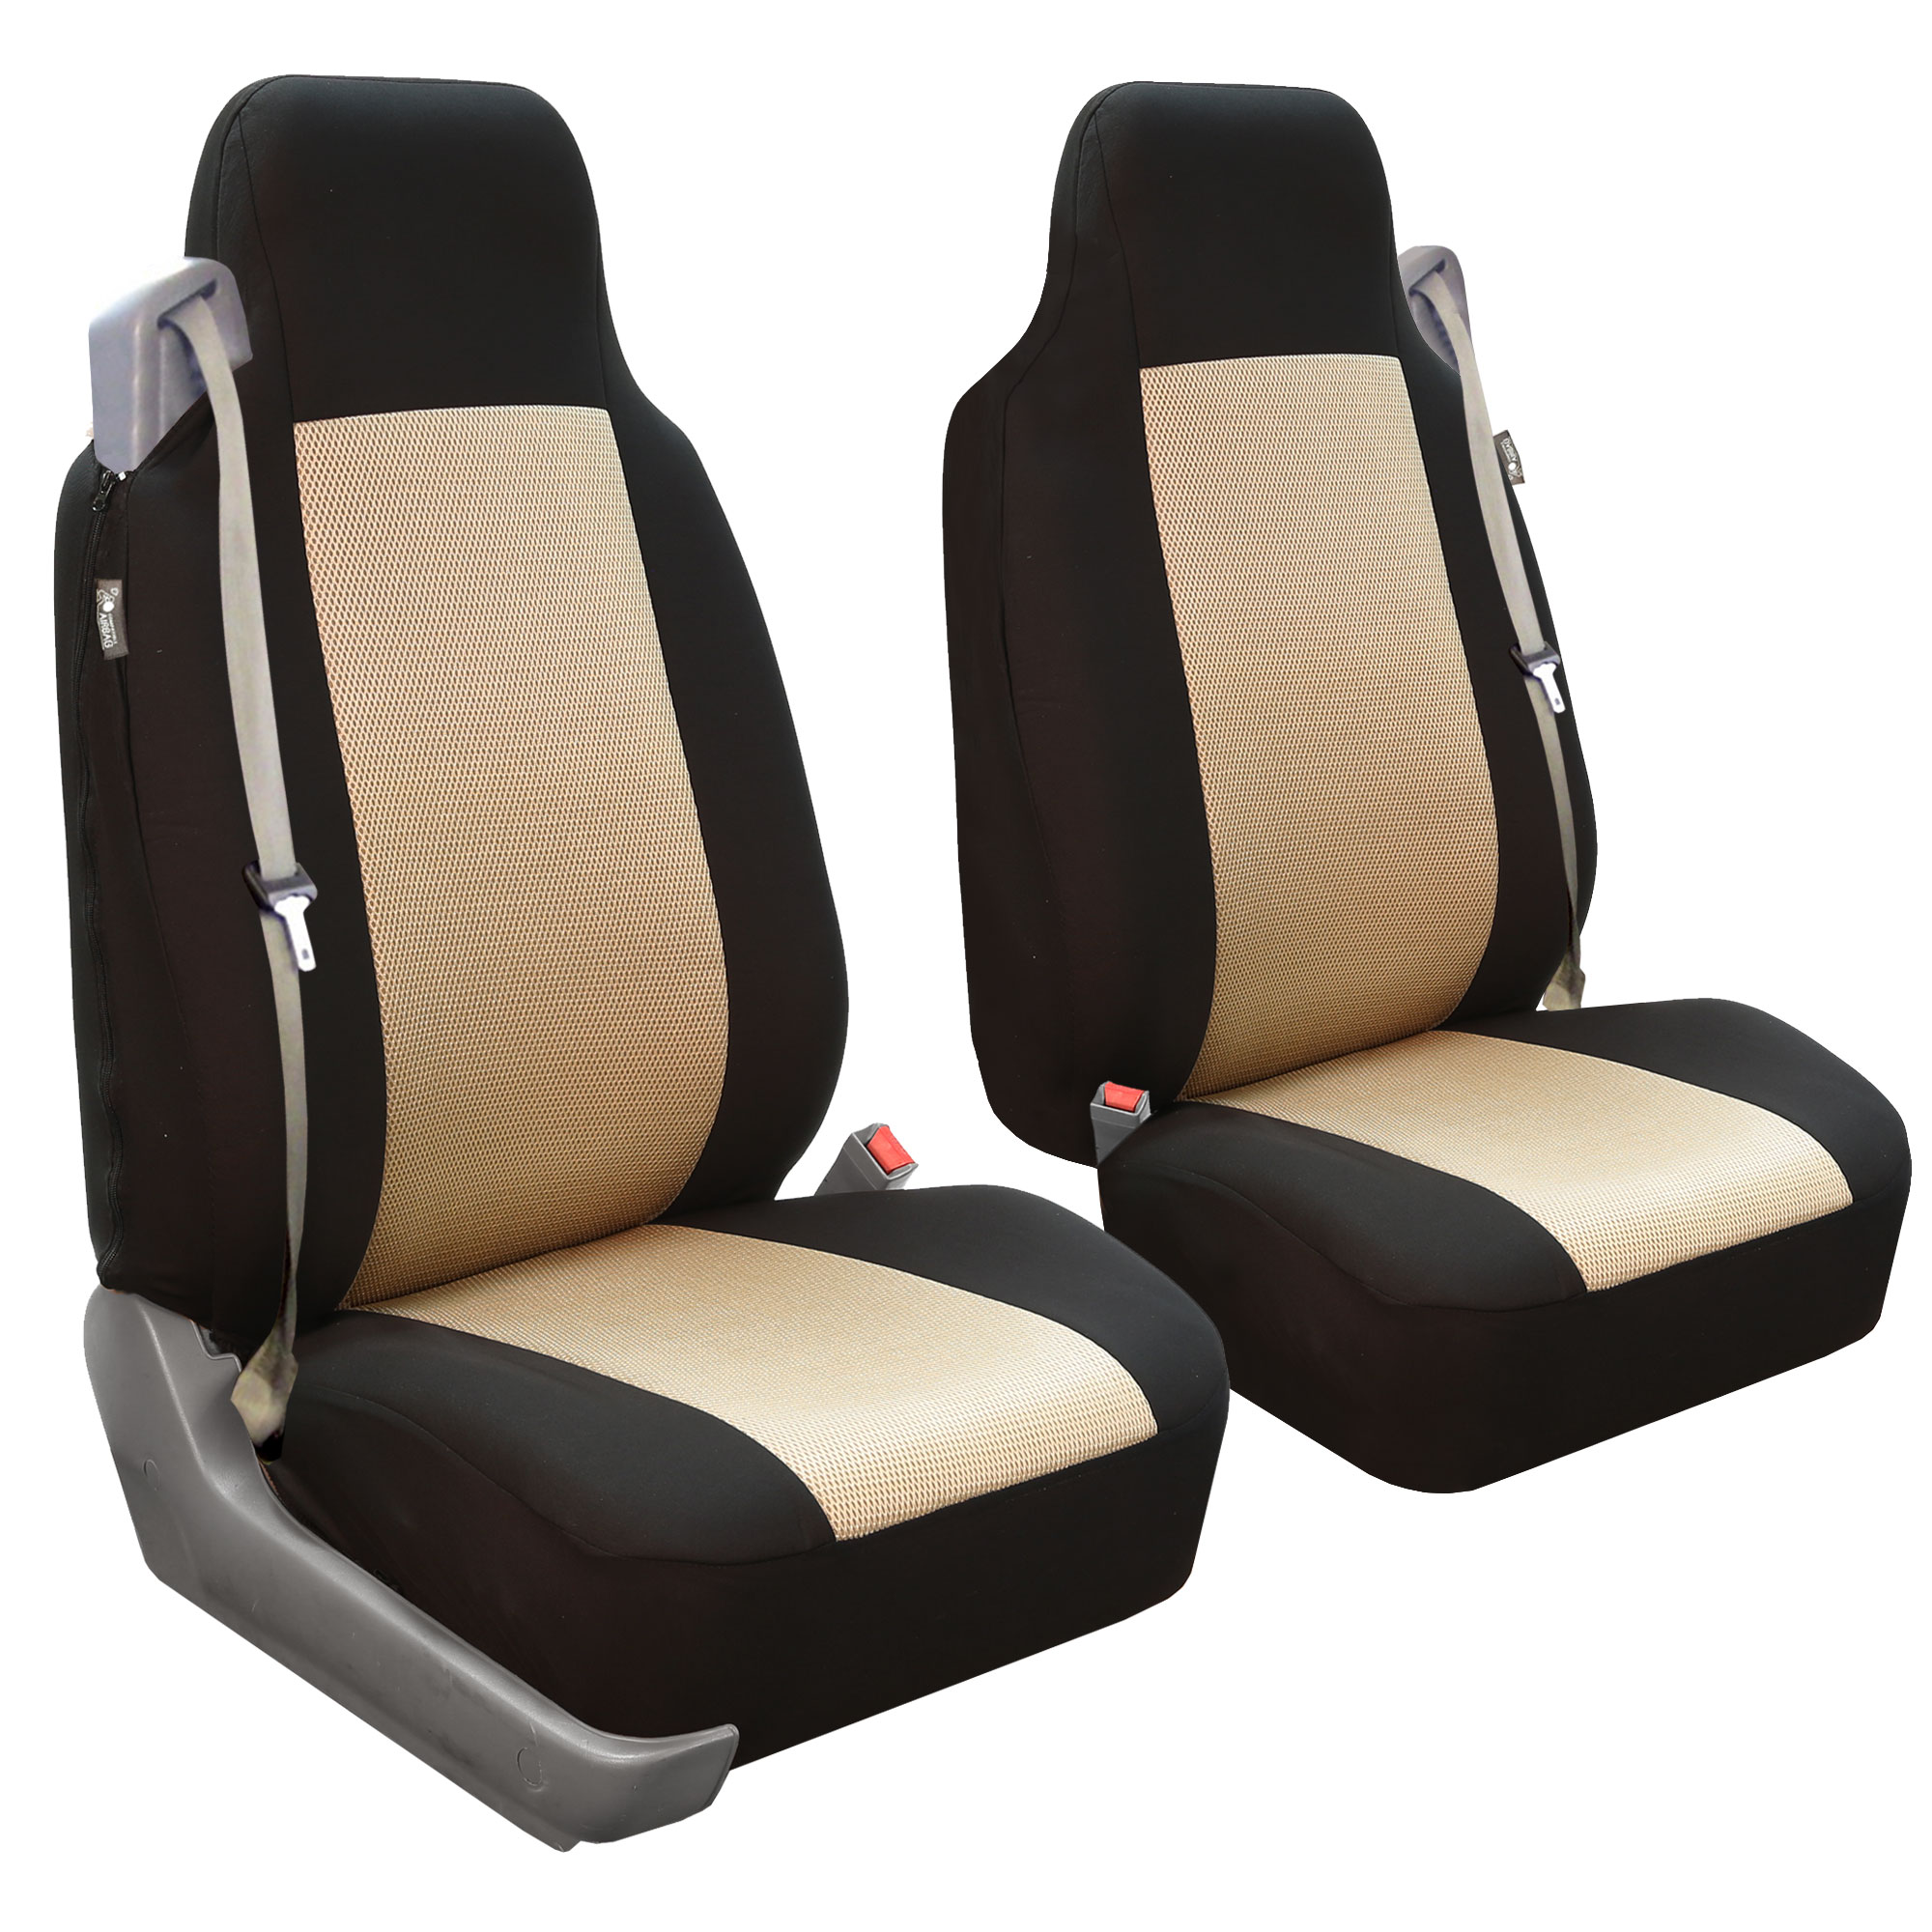 Swell Details About Car Seat Covers For Integrated Seat Belts Built In Seat Belt Beige Black Caraccident5 Cool Chair Designs And Ideas Caraccident5Info